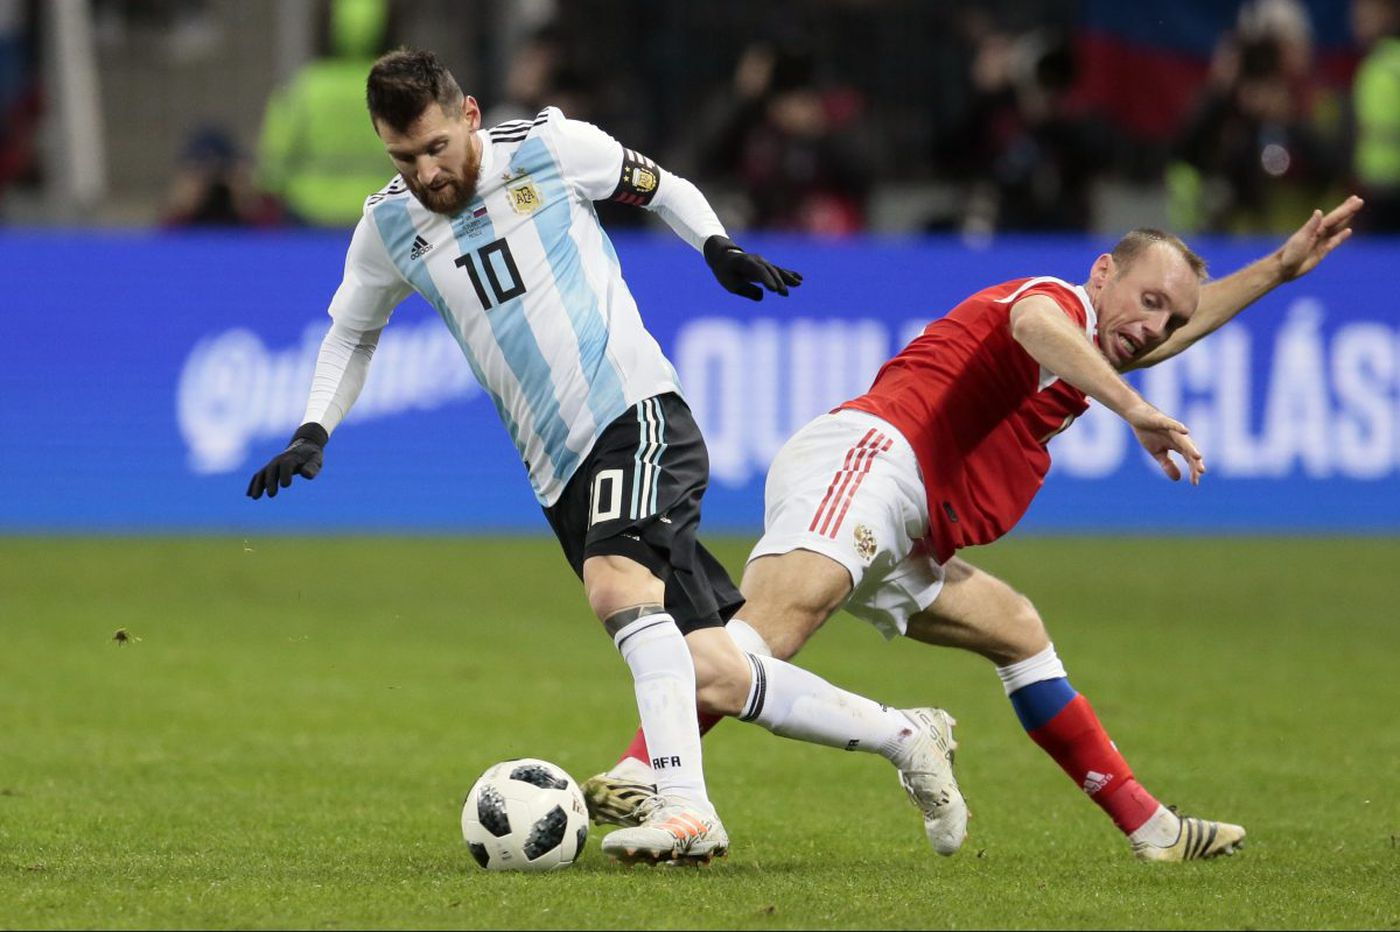 Comcast's Telemundo predicts ad sellout for Spanish-language rights to 2018 World Cup in Russia